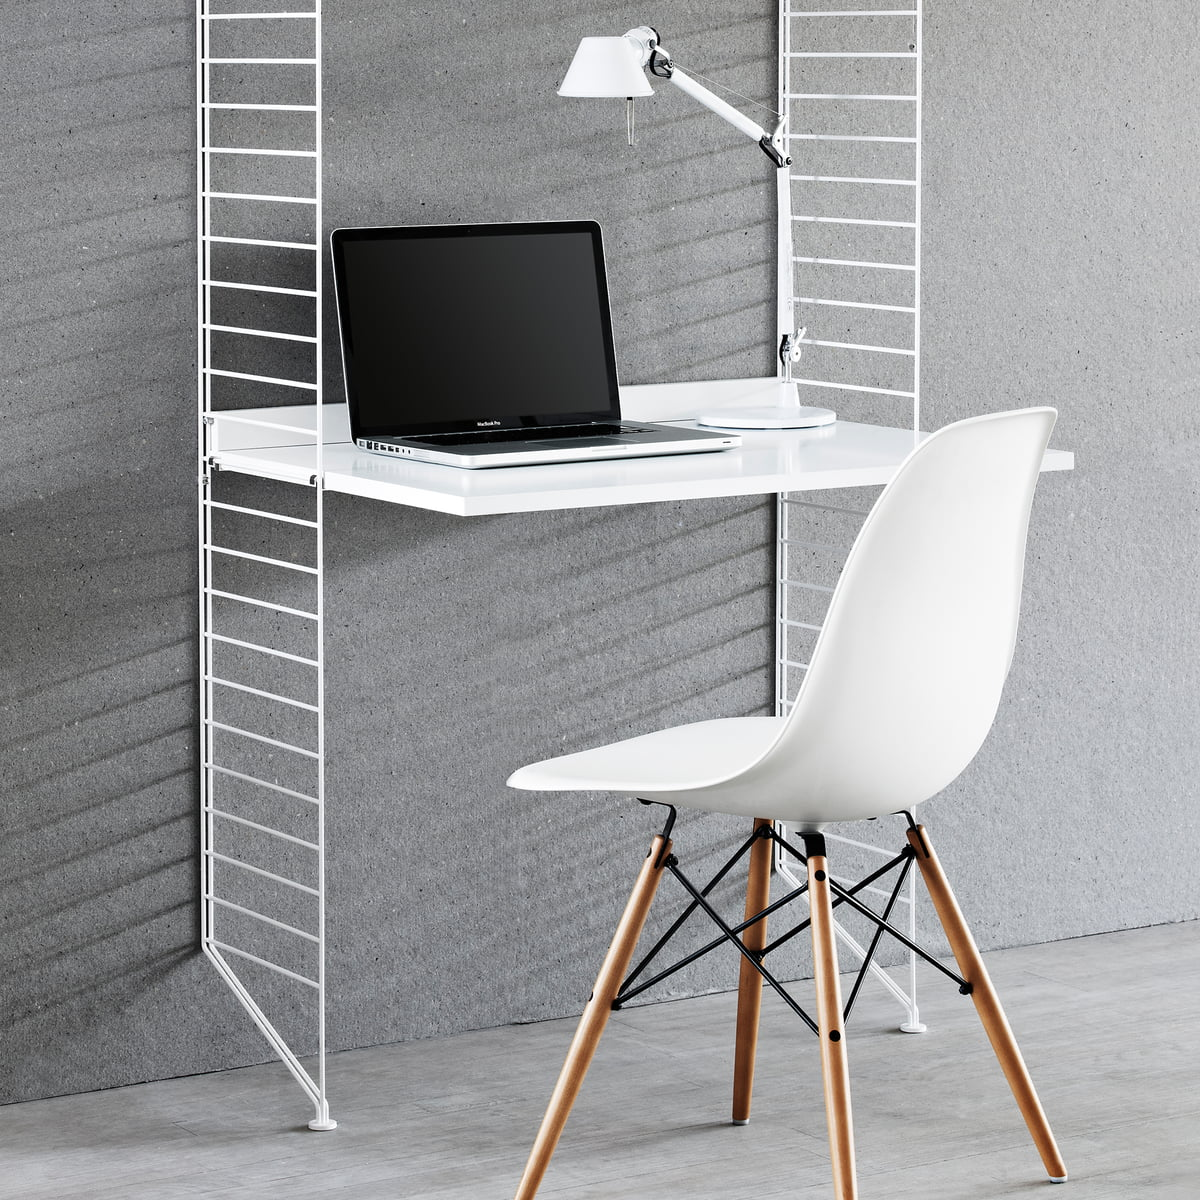 Fantastisch Work Desk 78x58 Cm By String In White Coating